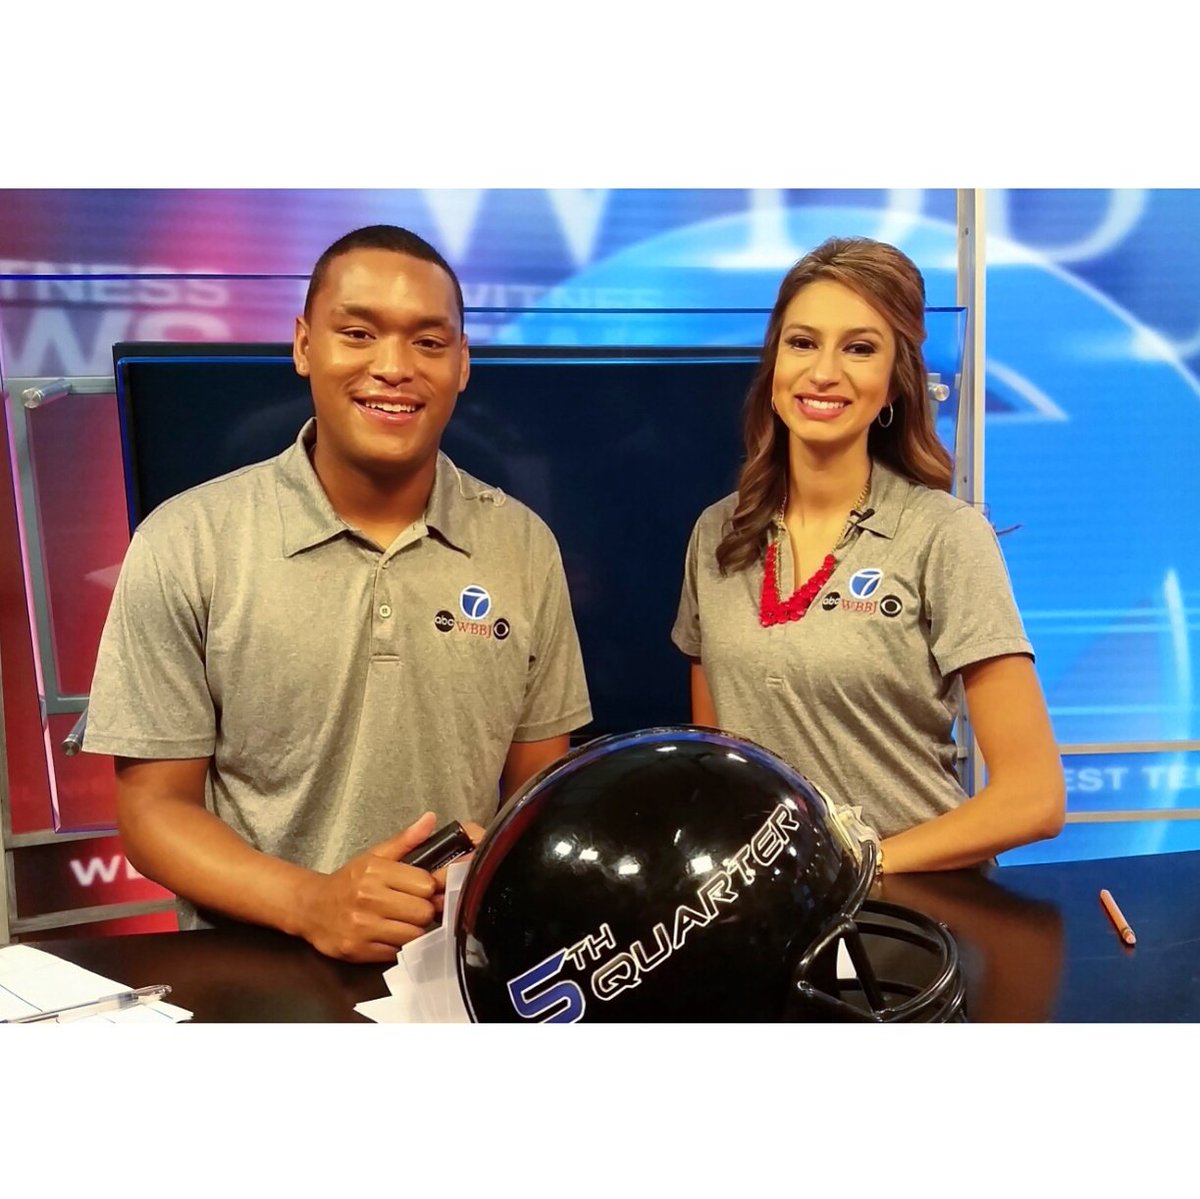 Chelsea Ambriz On Twitter Meteorologist By Day Sports Co Host By Night Thanks Wbbj7ahmad For Letting Me Join You For The 5th Quarter Fun